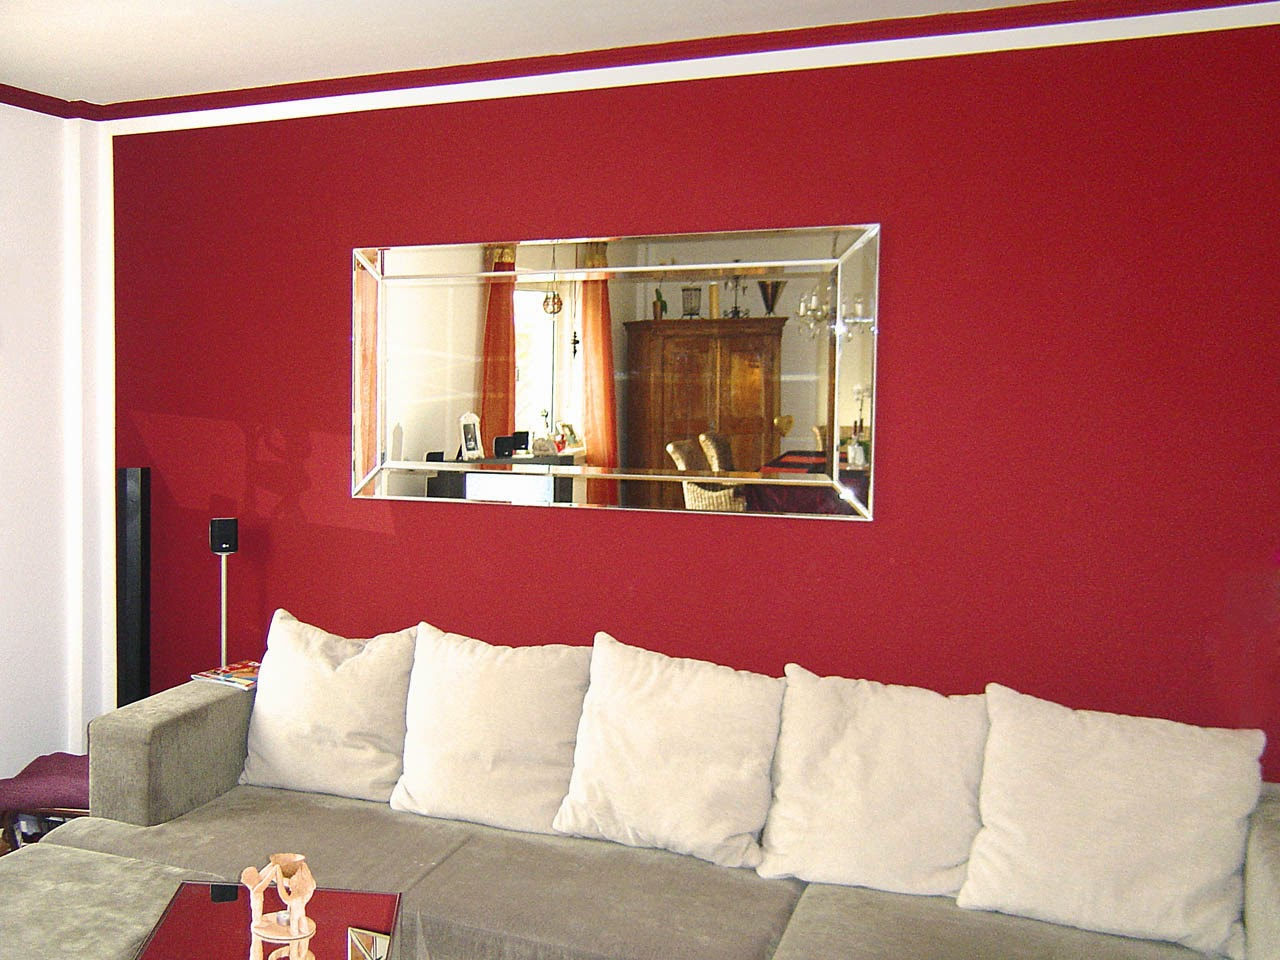 Decorilumina ideas sobre decoraci n de paredes interiores - Decoracion de interiores pinturas paredes ...